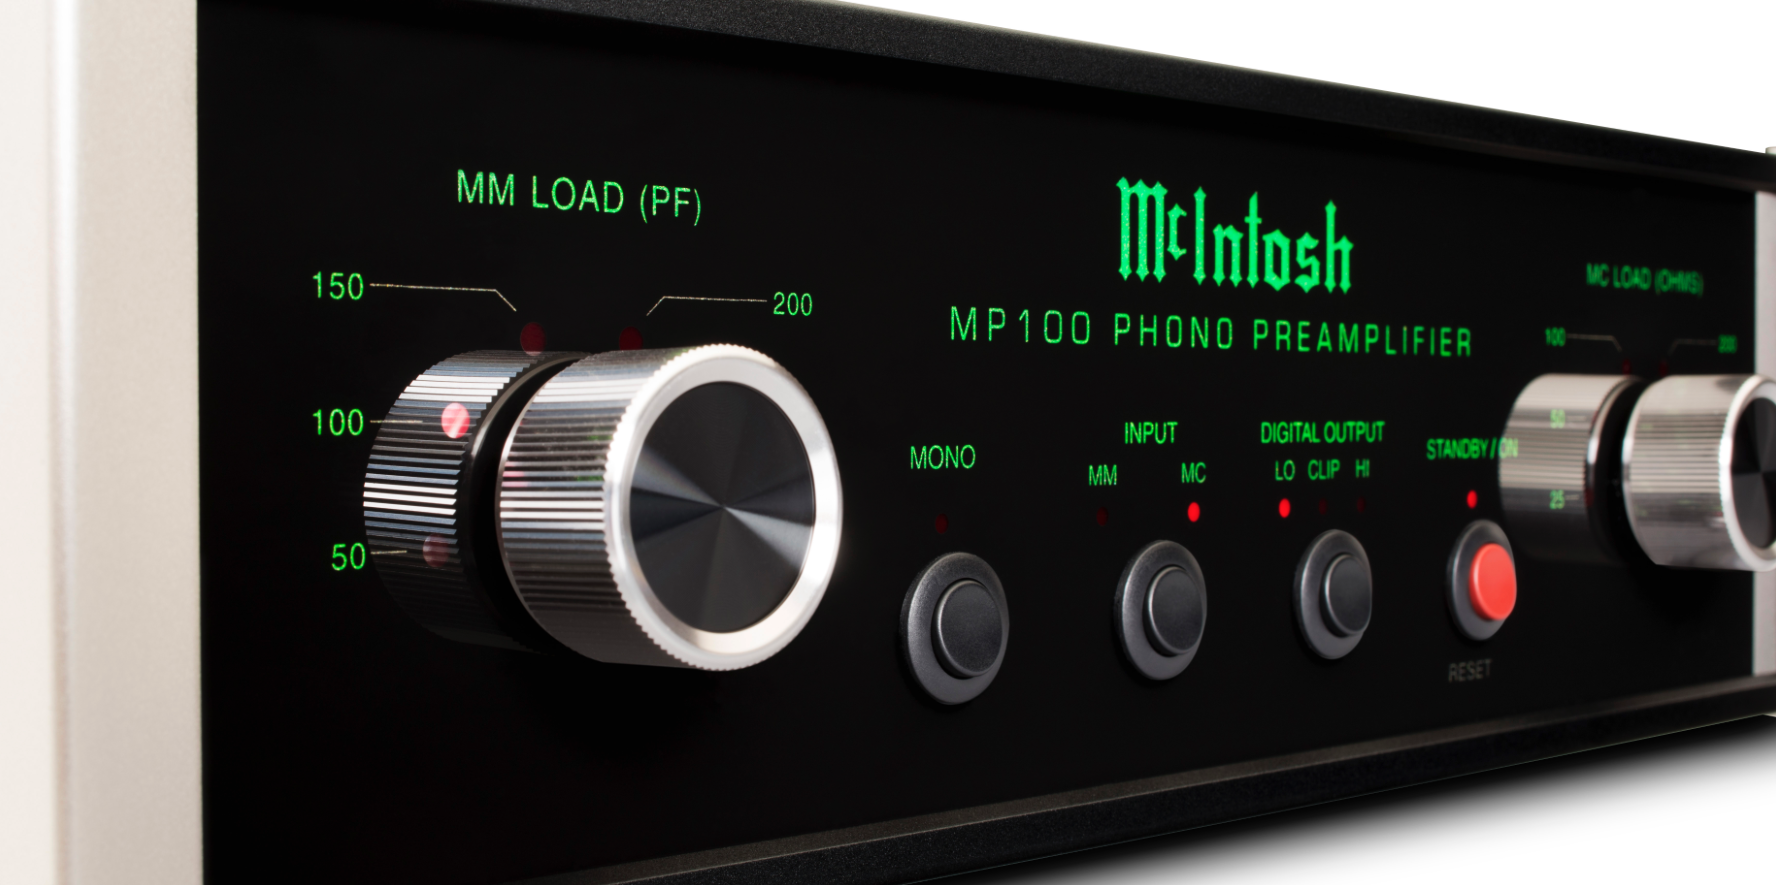 Mcintosh Mp100 Phono Amplifier Getting The Right Balance Preamplifier Input From Moving Coil Head So Bass Must Be Strong Dominant And Hit You Over Yes Well No Actually Was Thats True Underlying